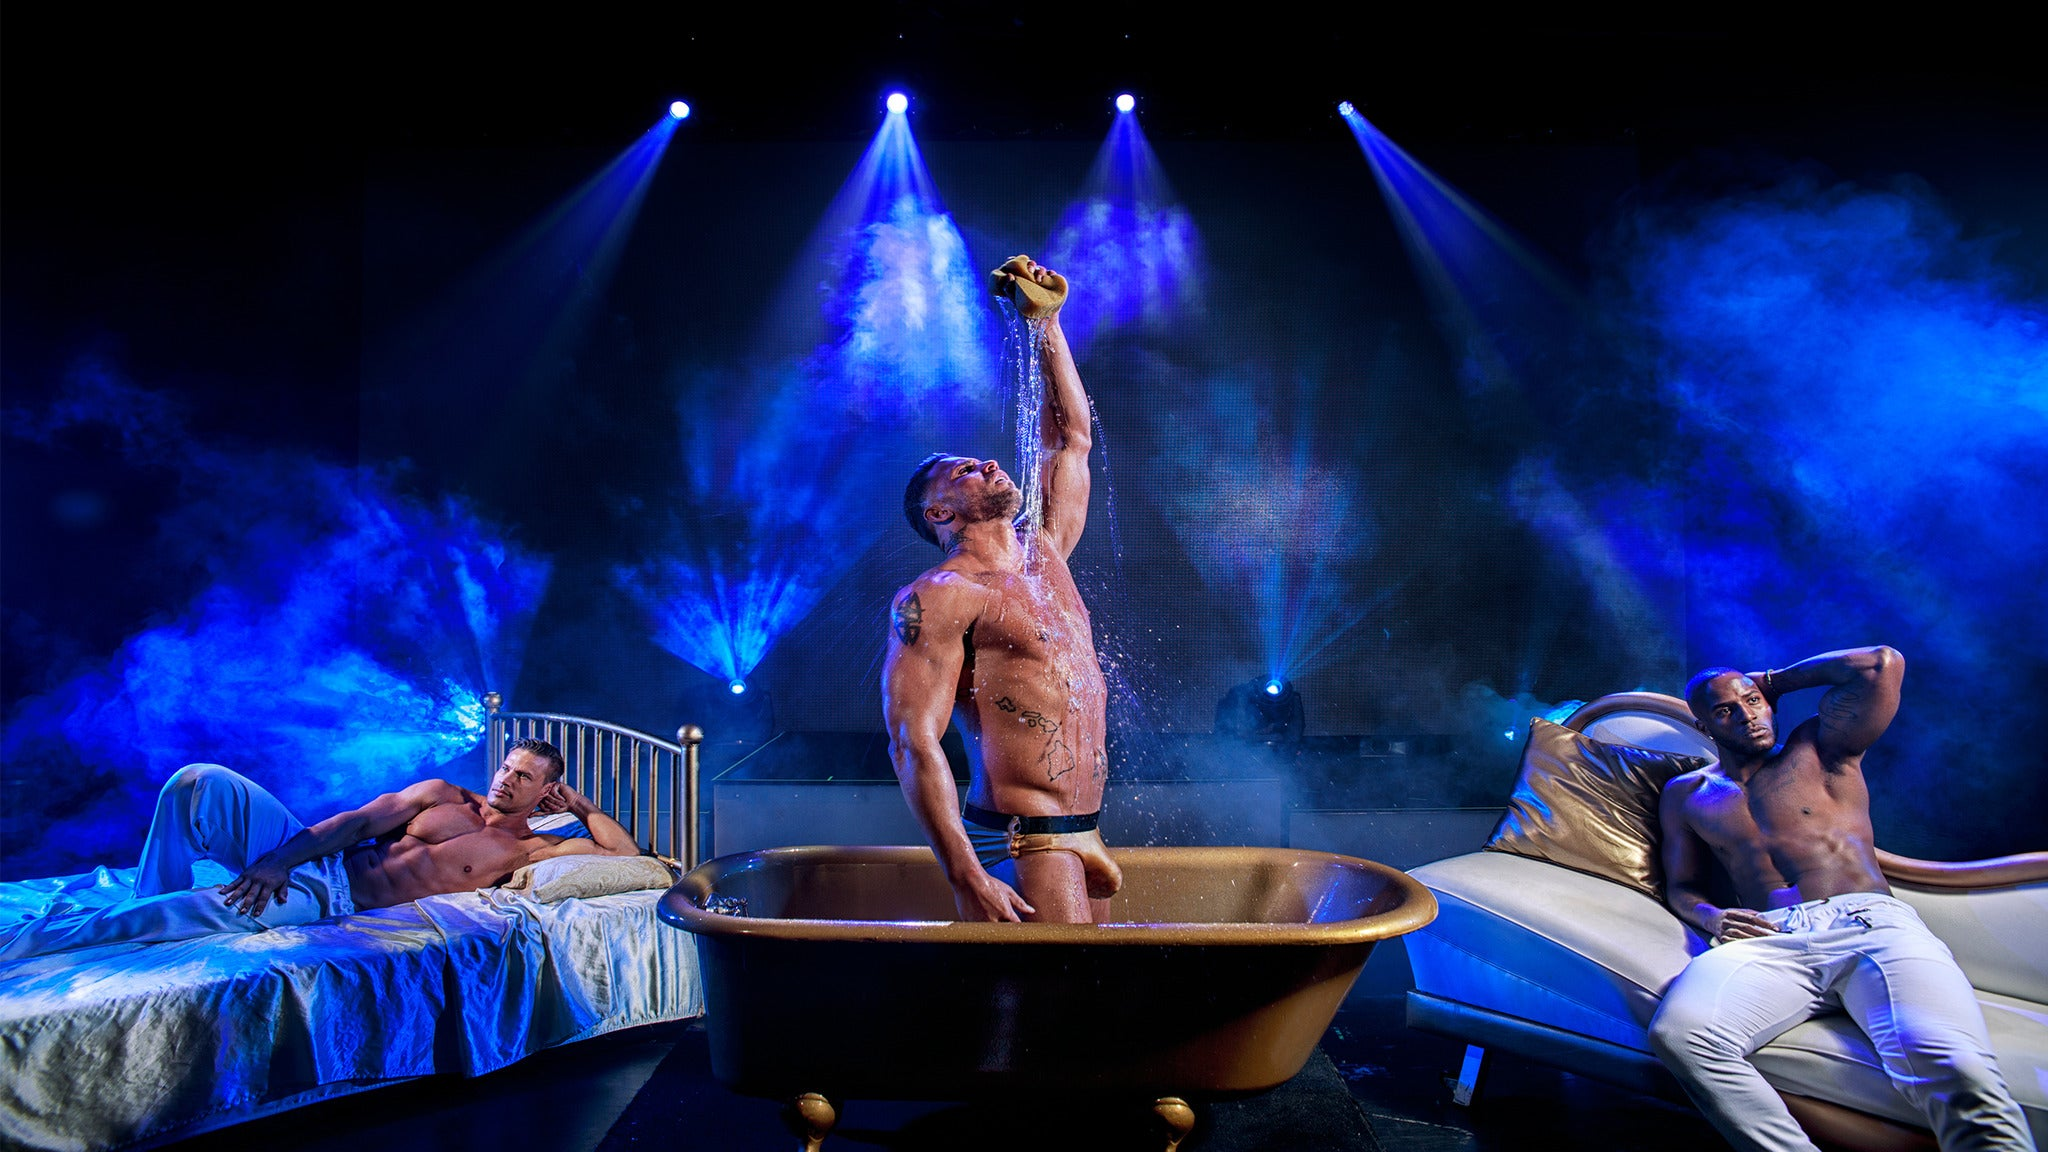 Chippendales: Let's Misbehave 2019 Tour at Aura